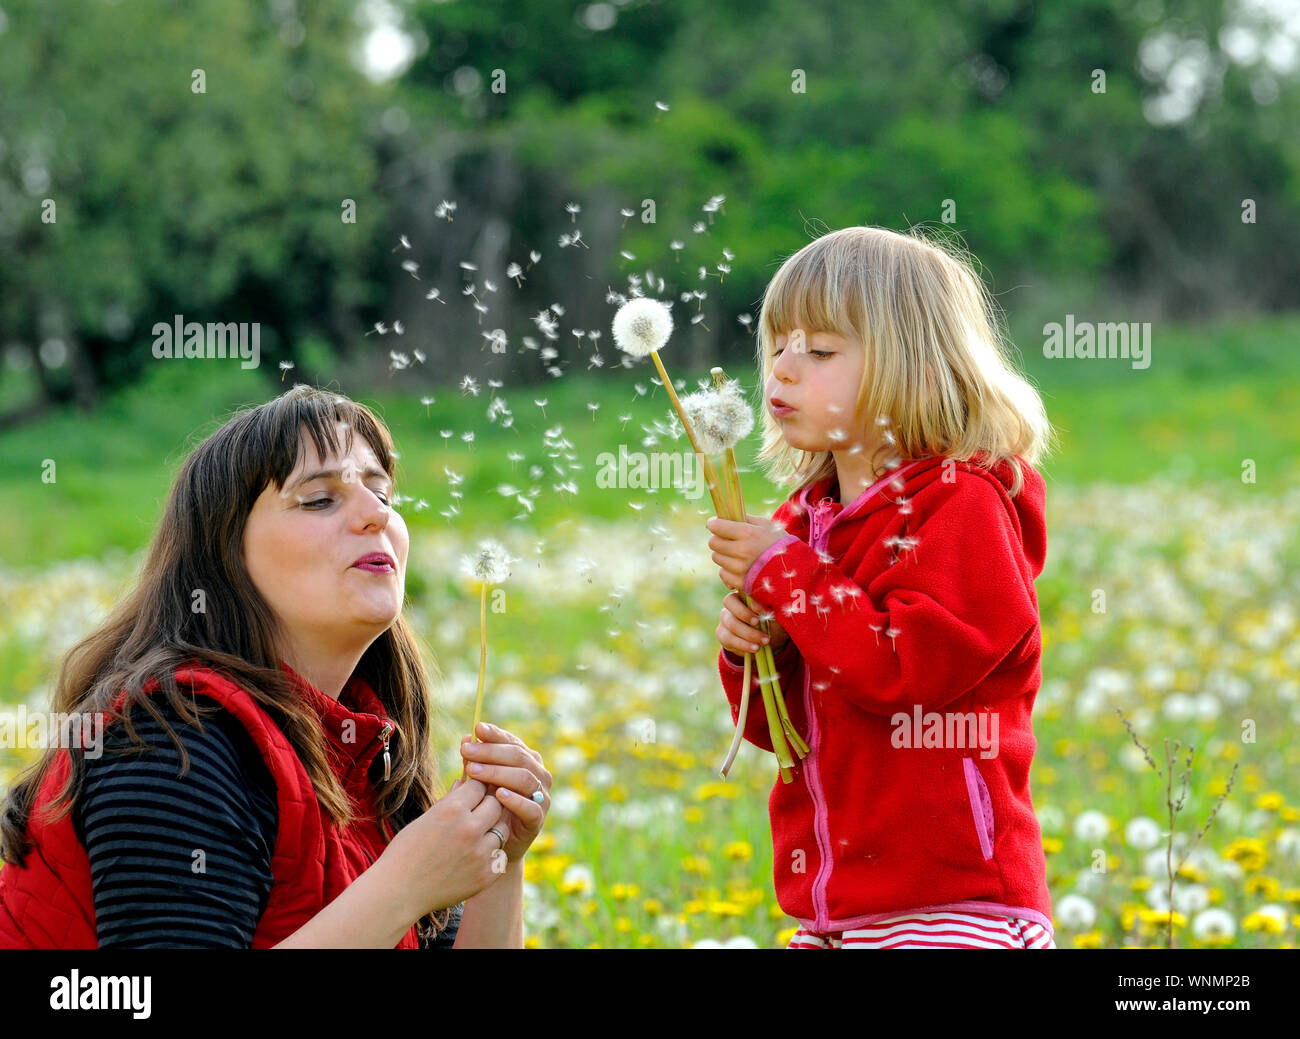 Mother And Daughter Playing With Dandelions At Park Stock Photo